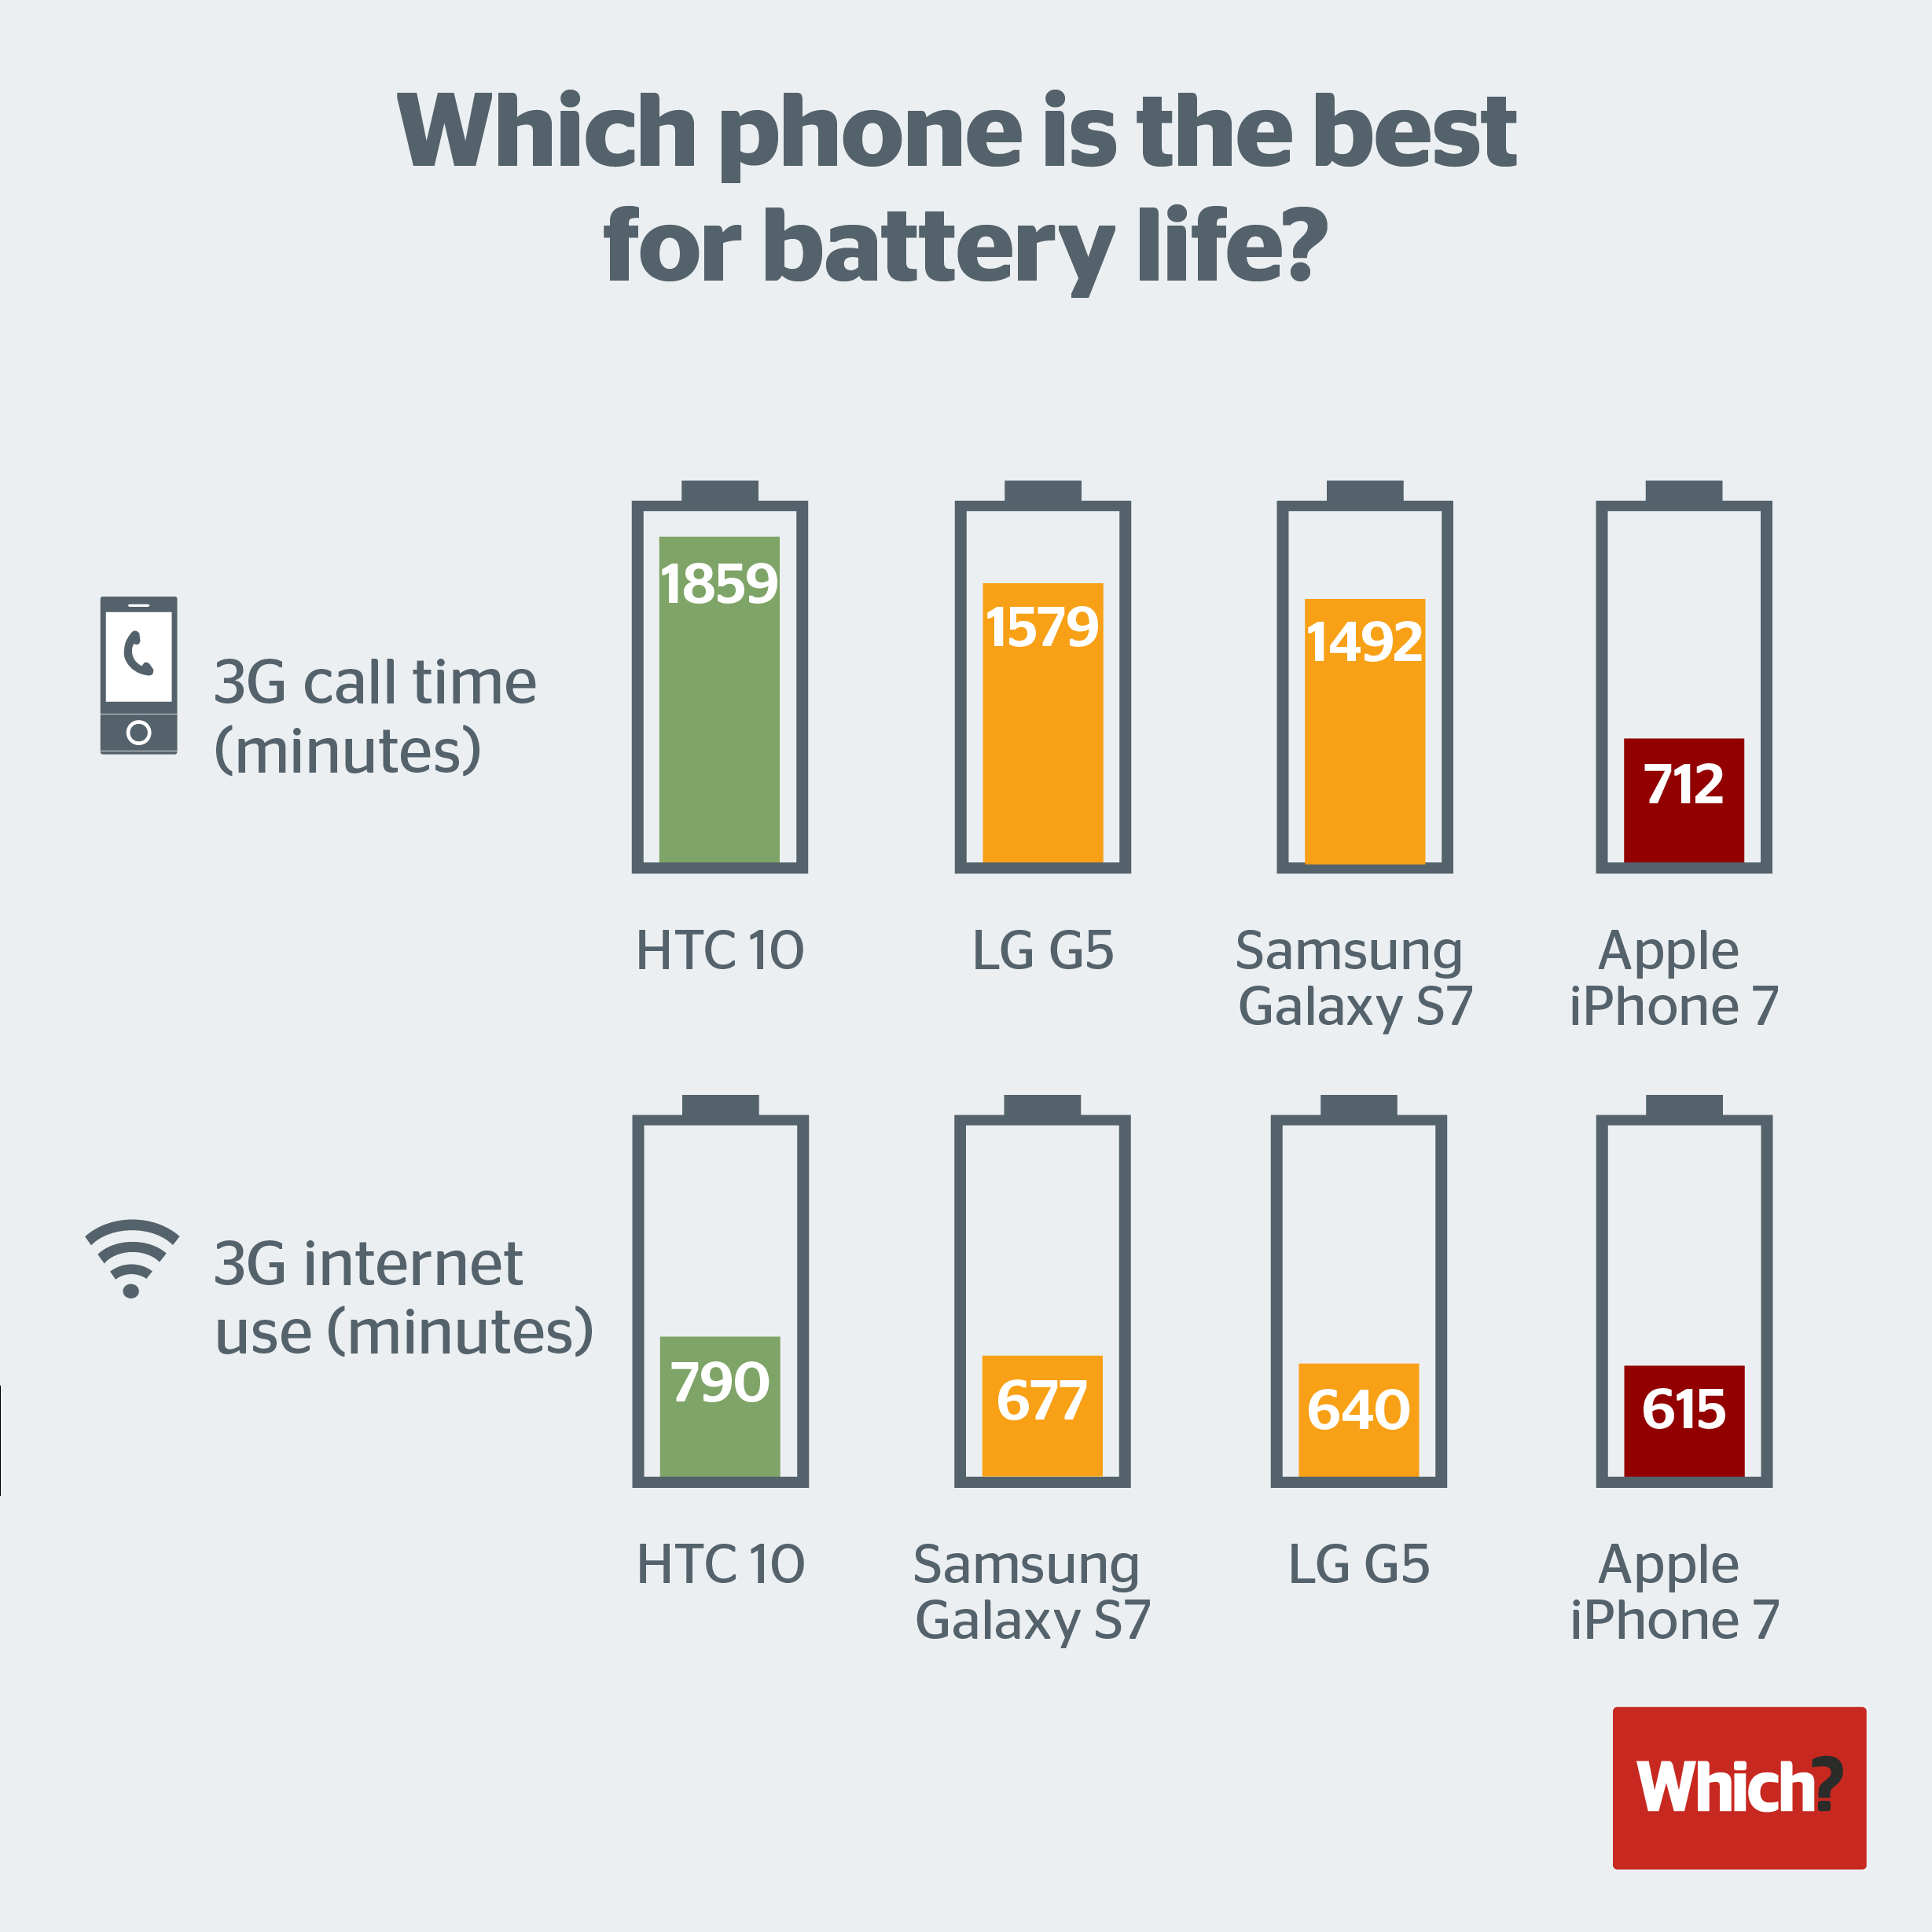 Phone Iphones Compared To Android Phones iphone 7 has the worst battery life compared to android phones image via which